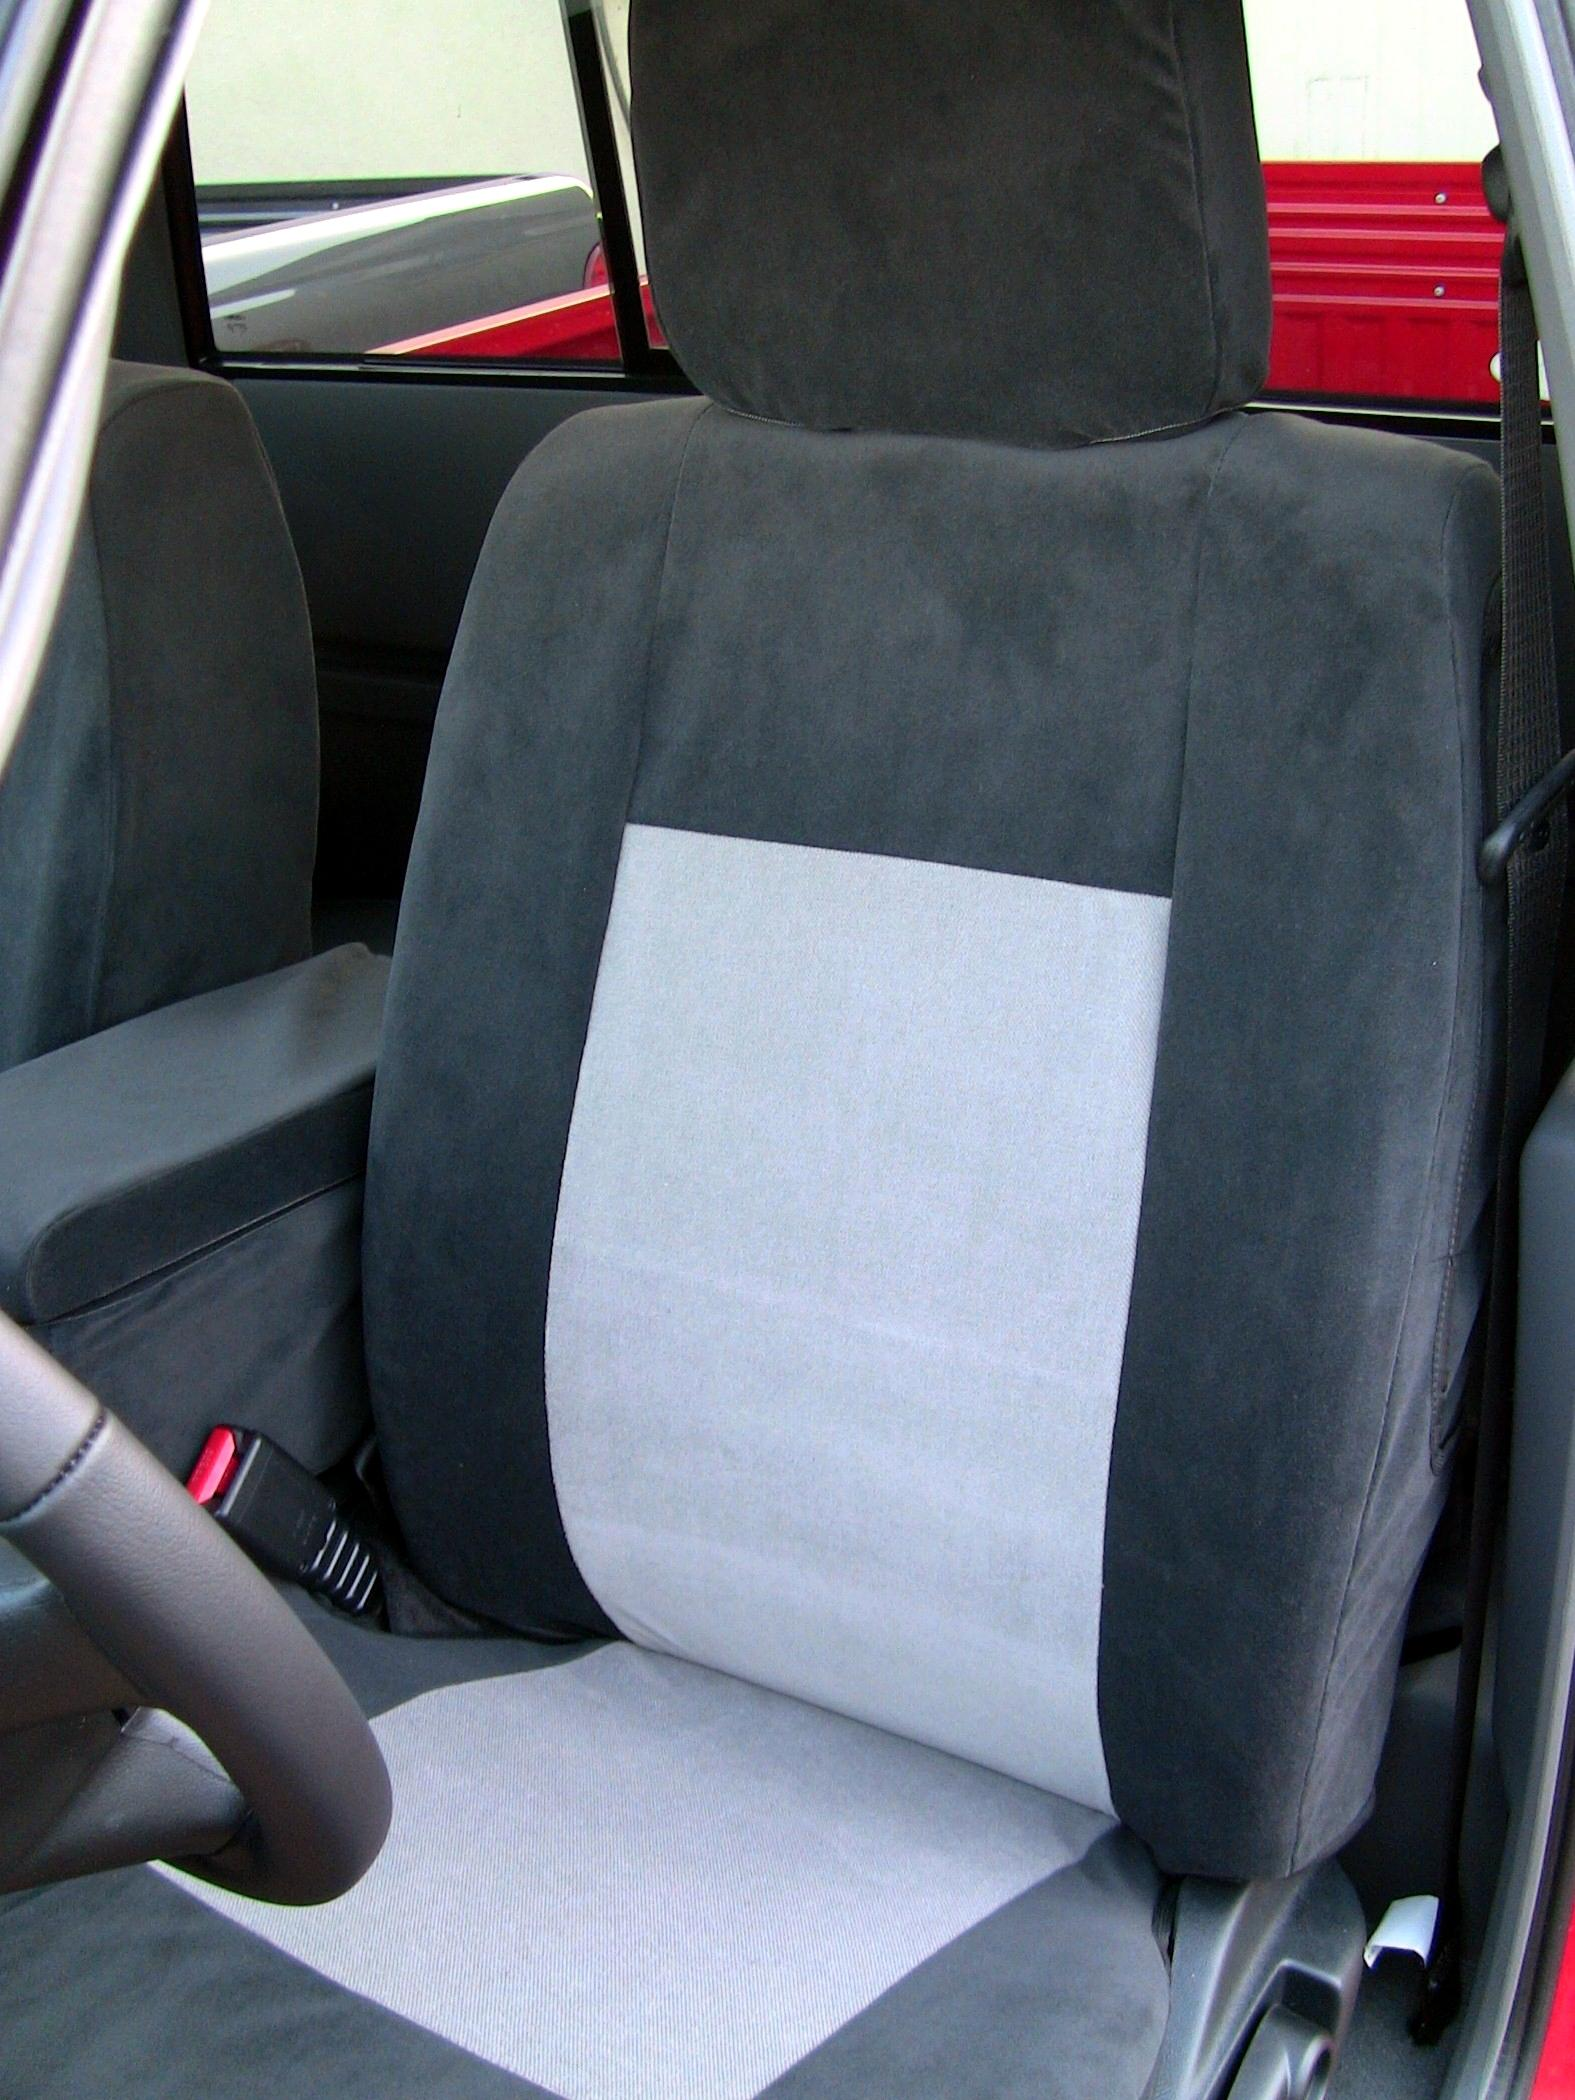 2010-2011 Ford Ranger Front 60/40 Split Seat with Opening Center Console ... & 2010-2012 Ford Ranger Front 60/40 Split Seat with Opening Center ... markmcfarlin.com